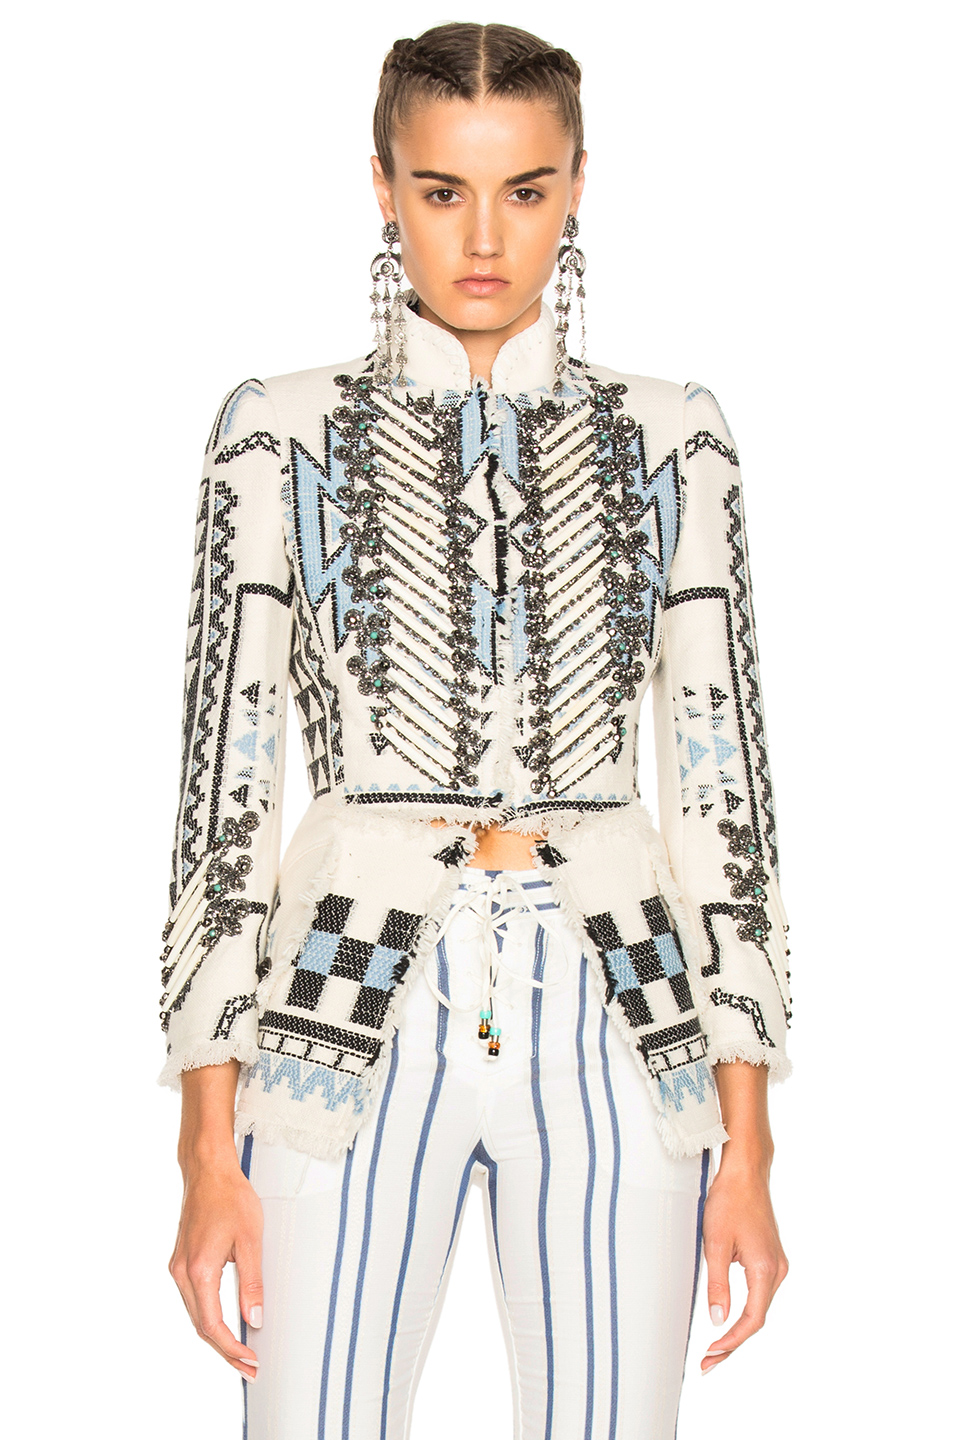 Roberto Cavalli Woven Jacket in White,Blue,Abstract